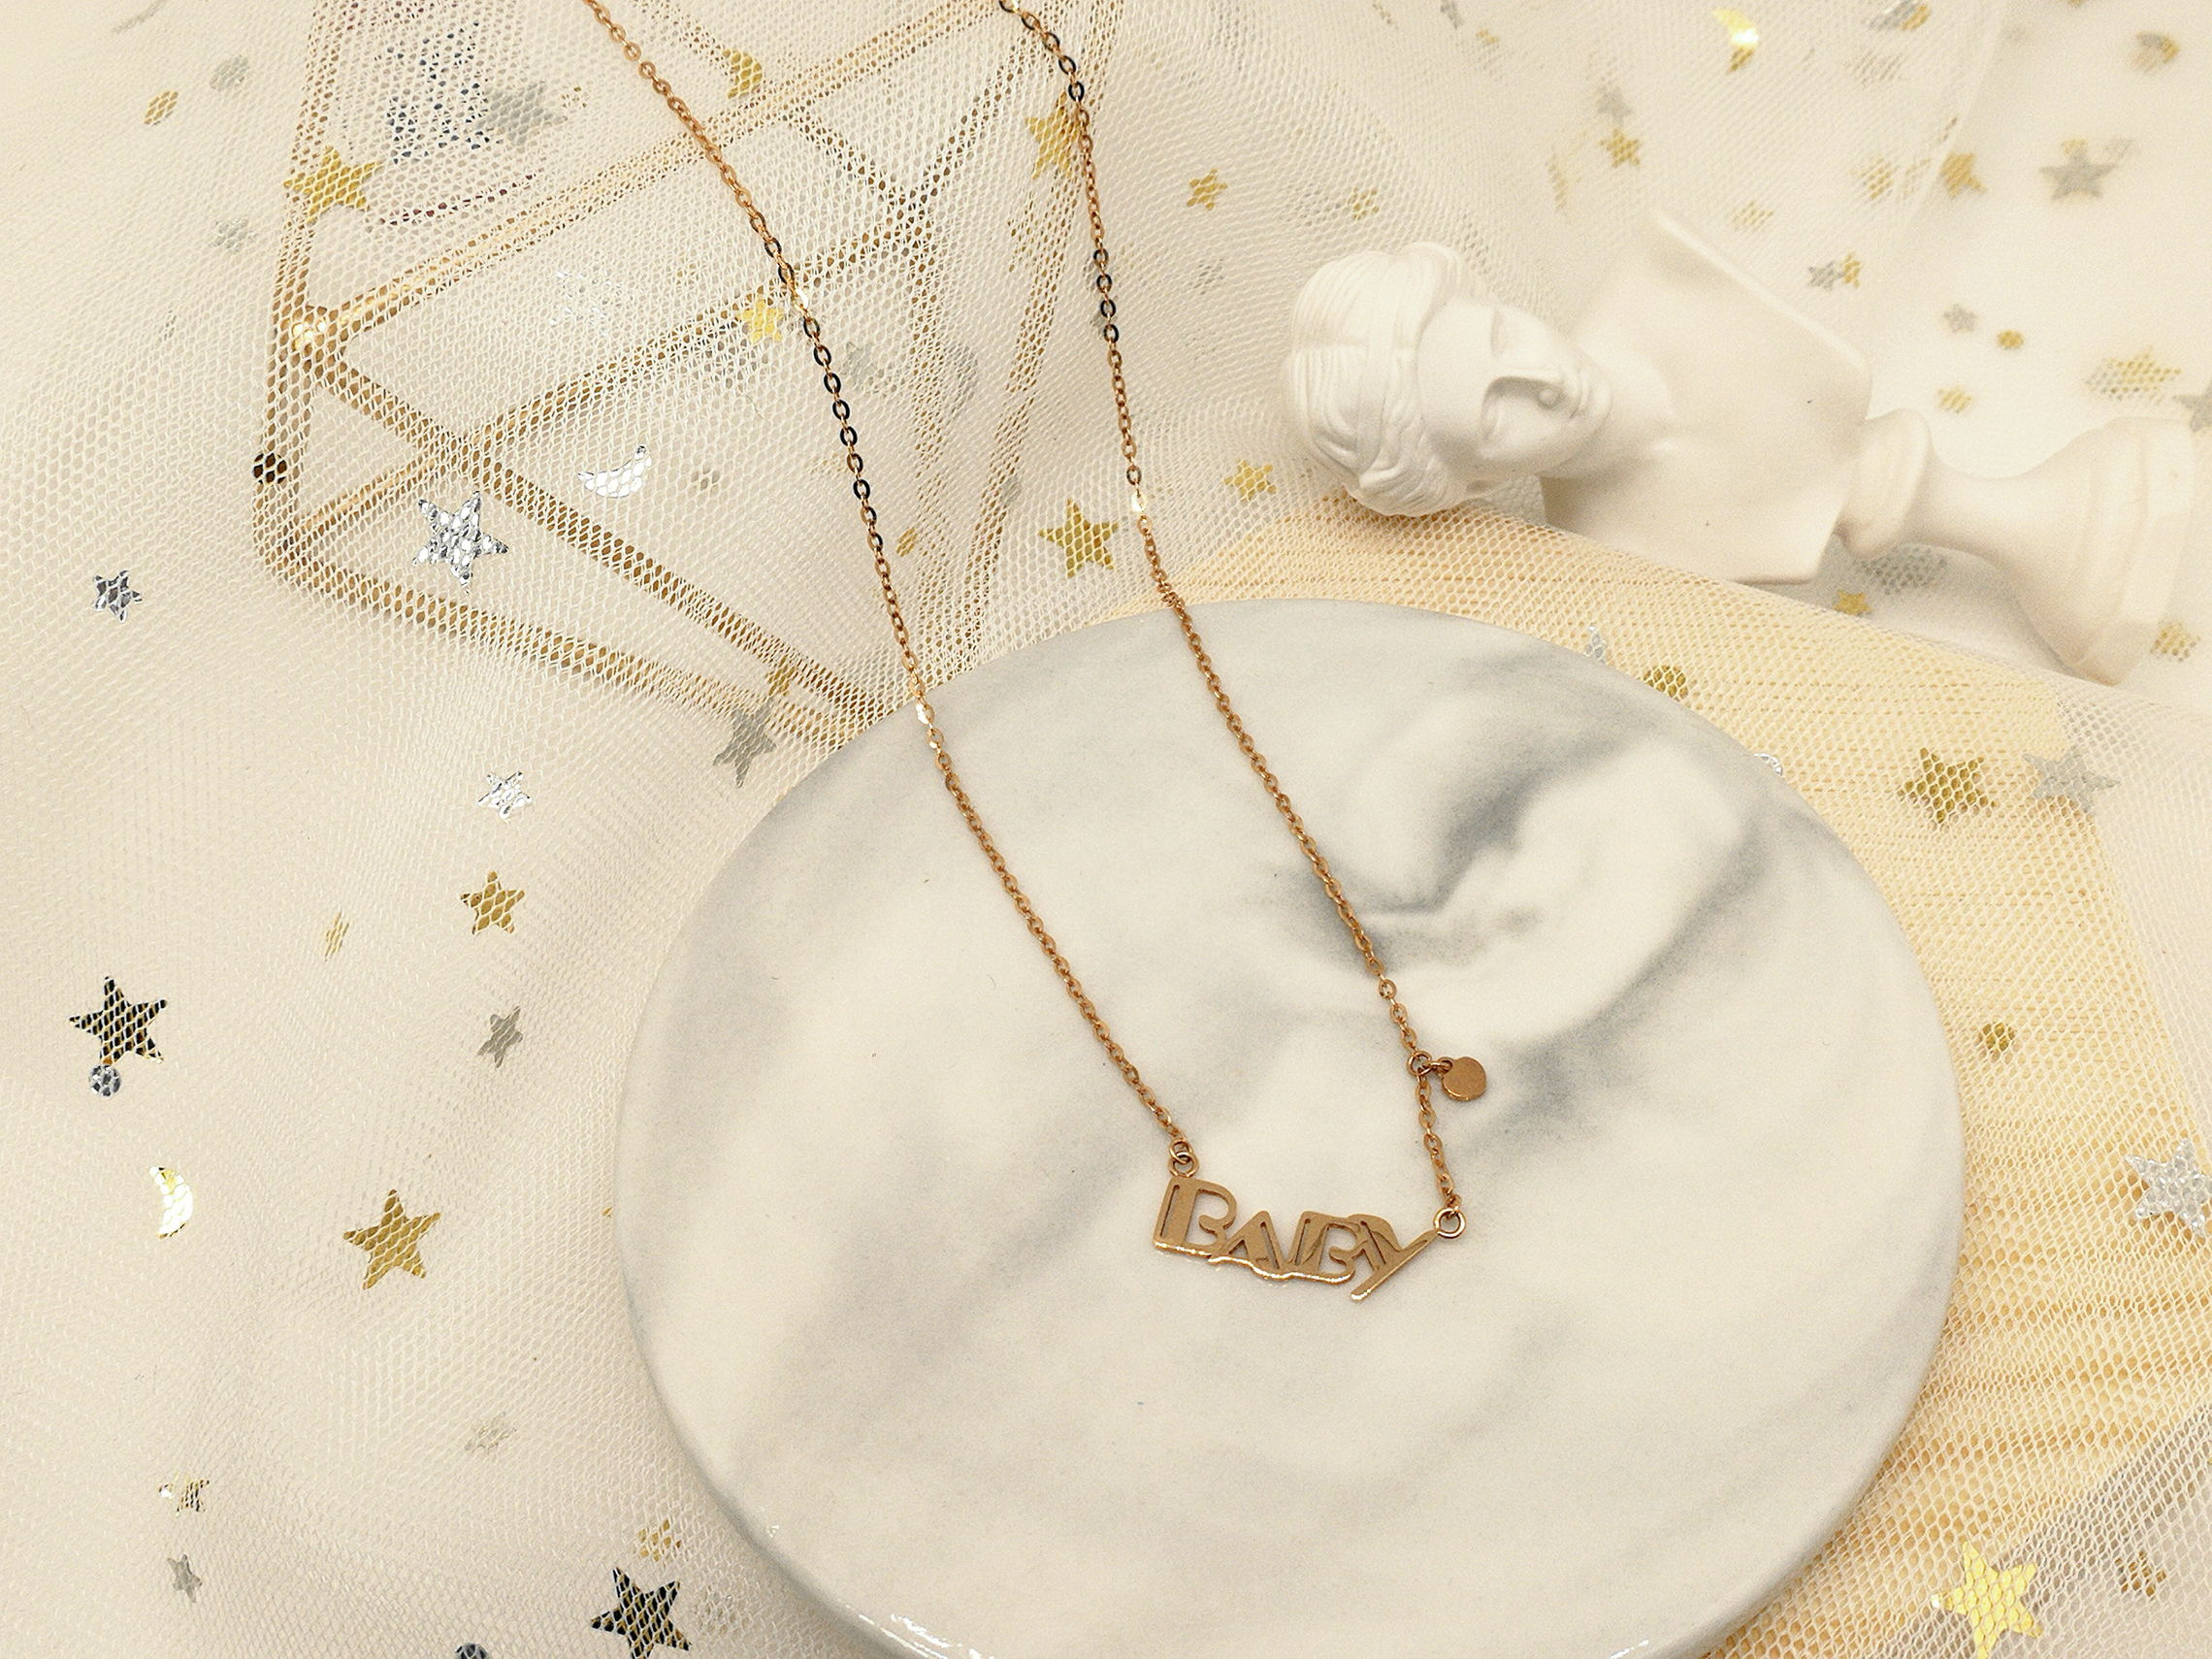 Heart jewelry design baby necklace for women simple creative fashion neck chain English letter rose gold collar